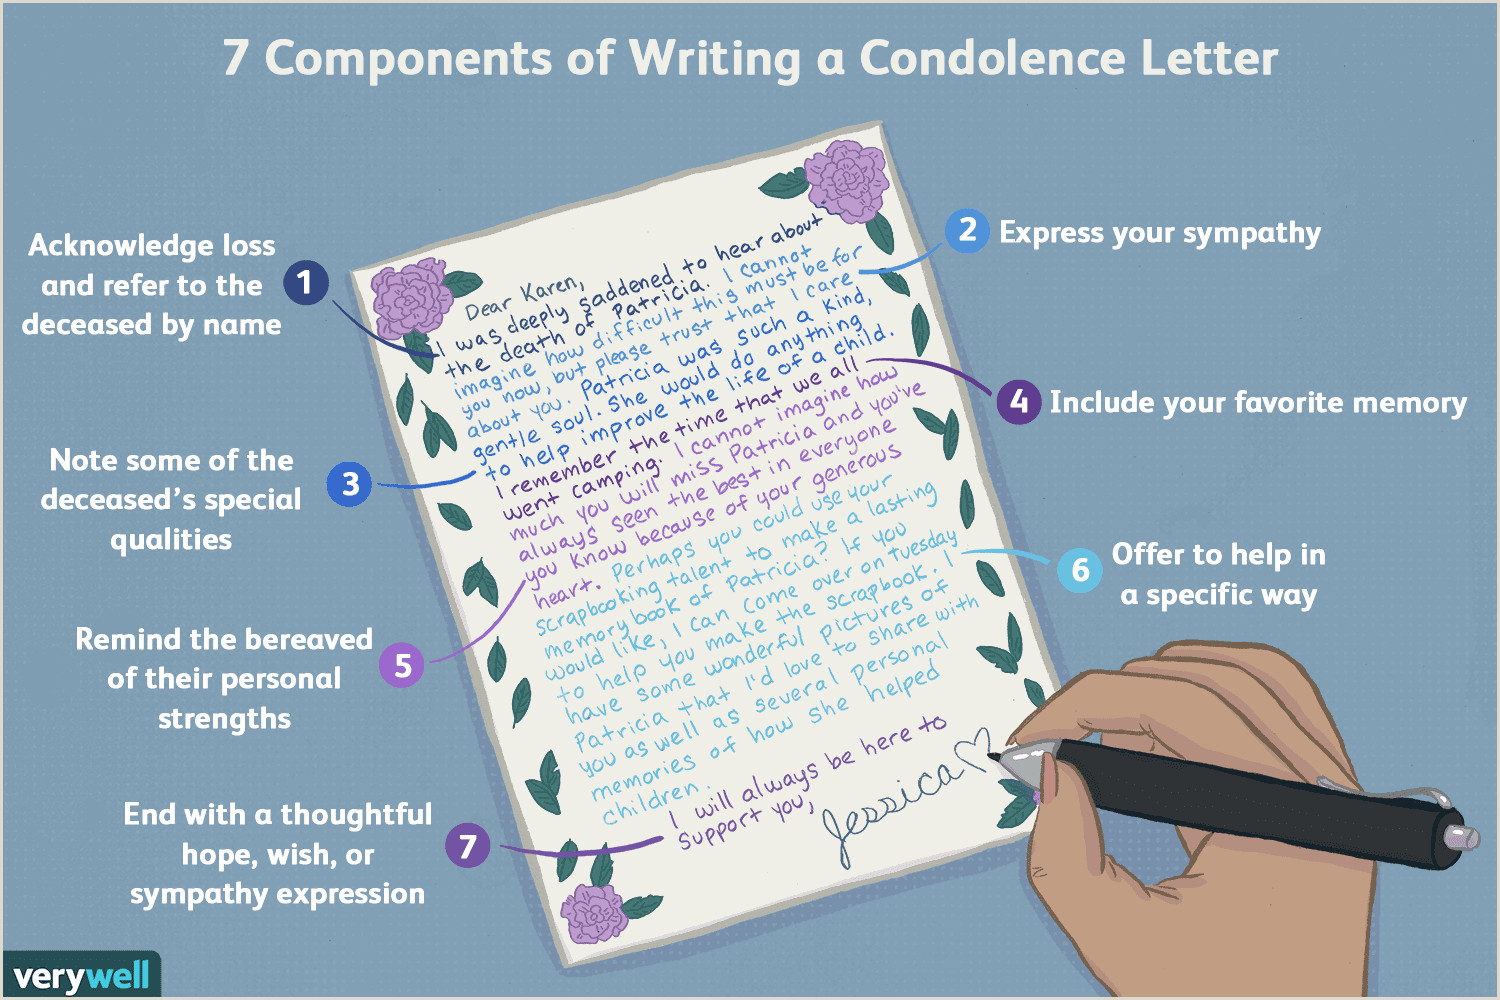 How to Write a Condolence Letter or Sympathy Note